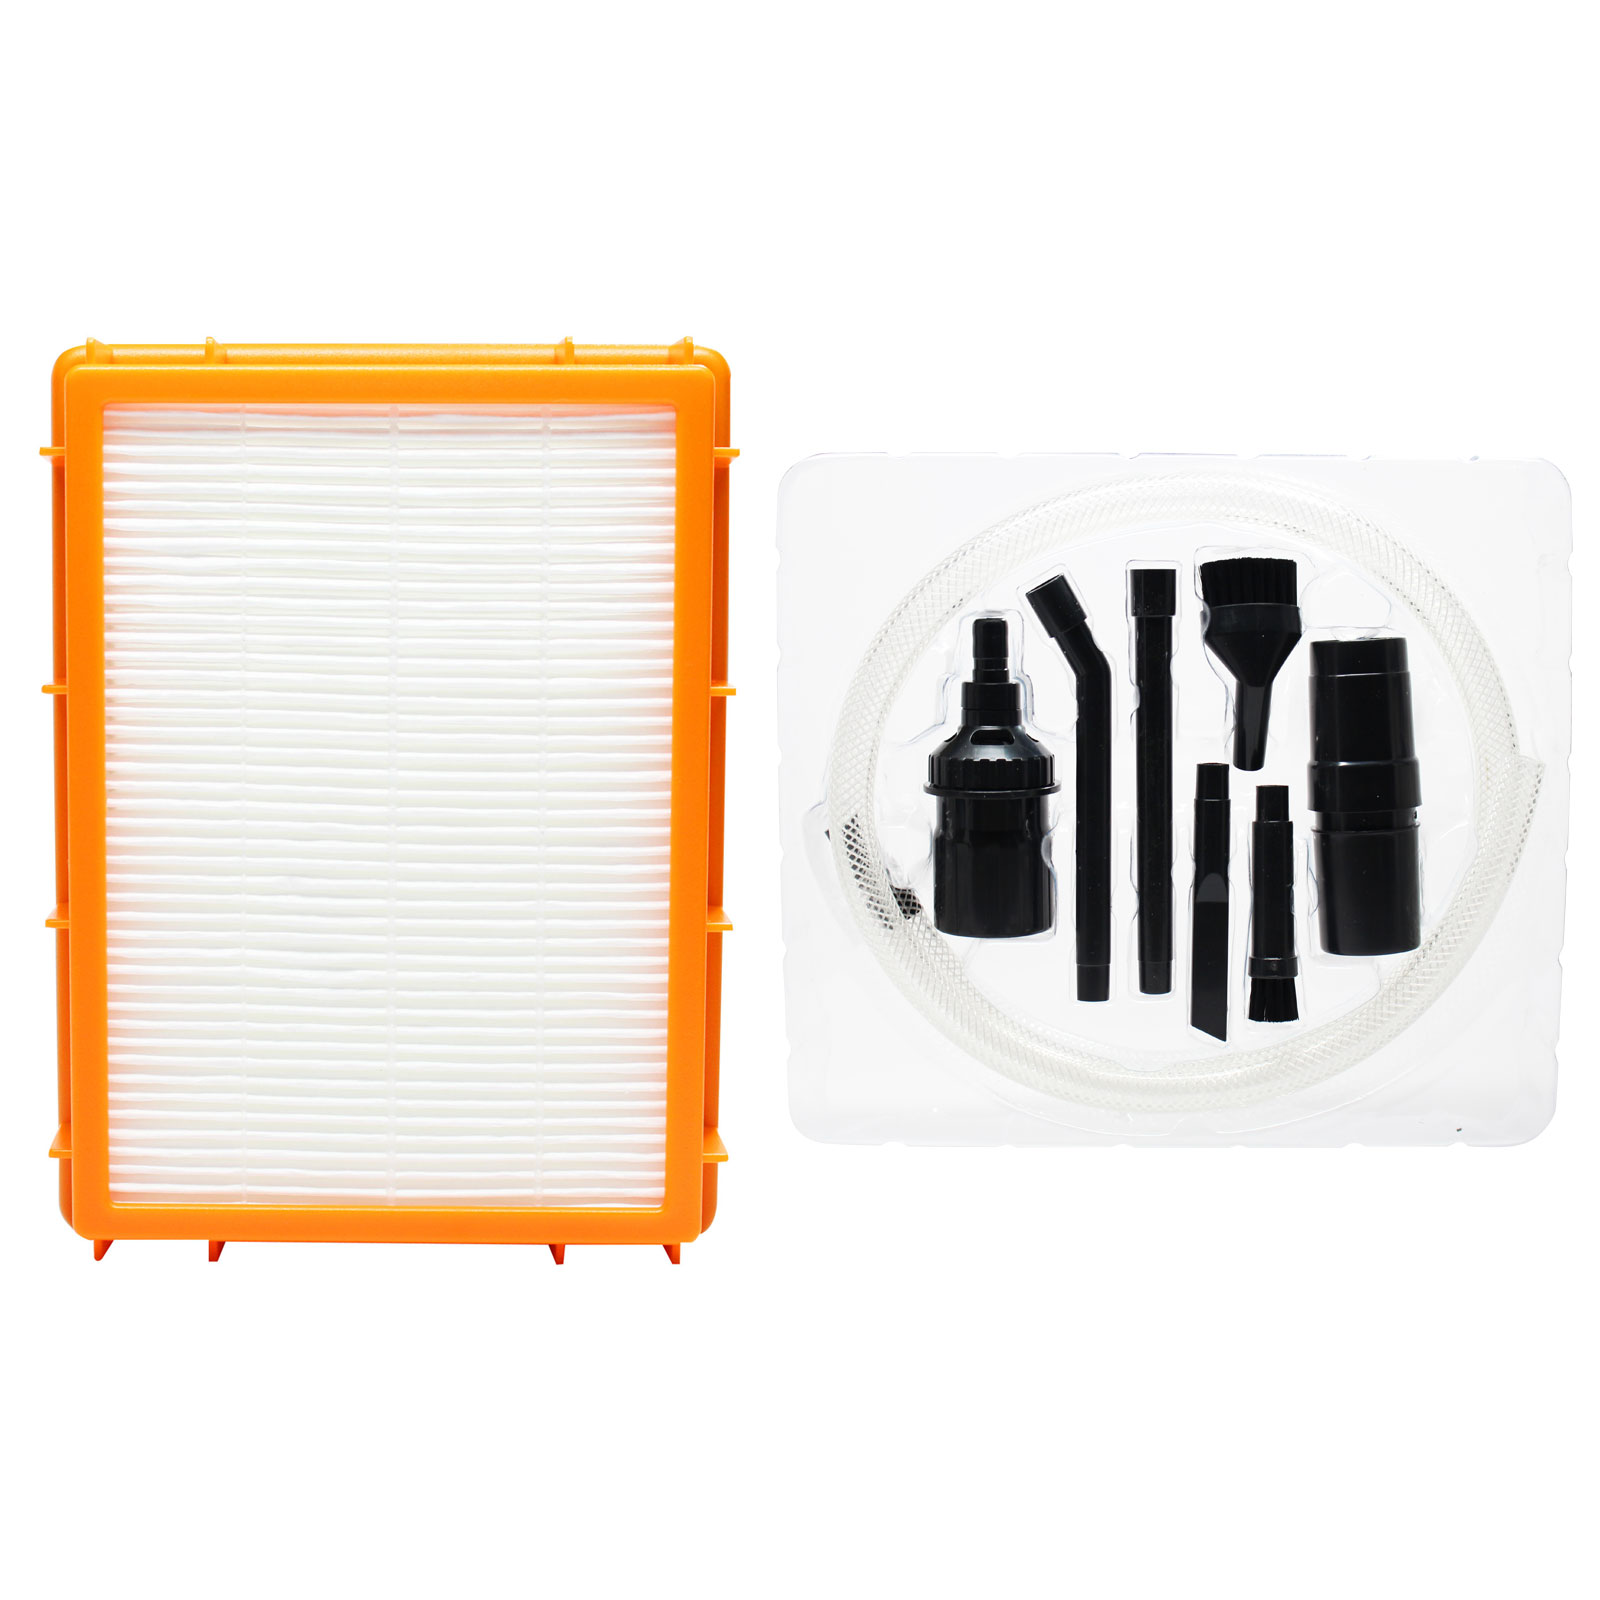 hight resolution of replacement eureka 4870hz vacuum hepa filter with 7 piece micro vacuum attachment kit compatible eureka hf 2 hepa filter